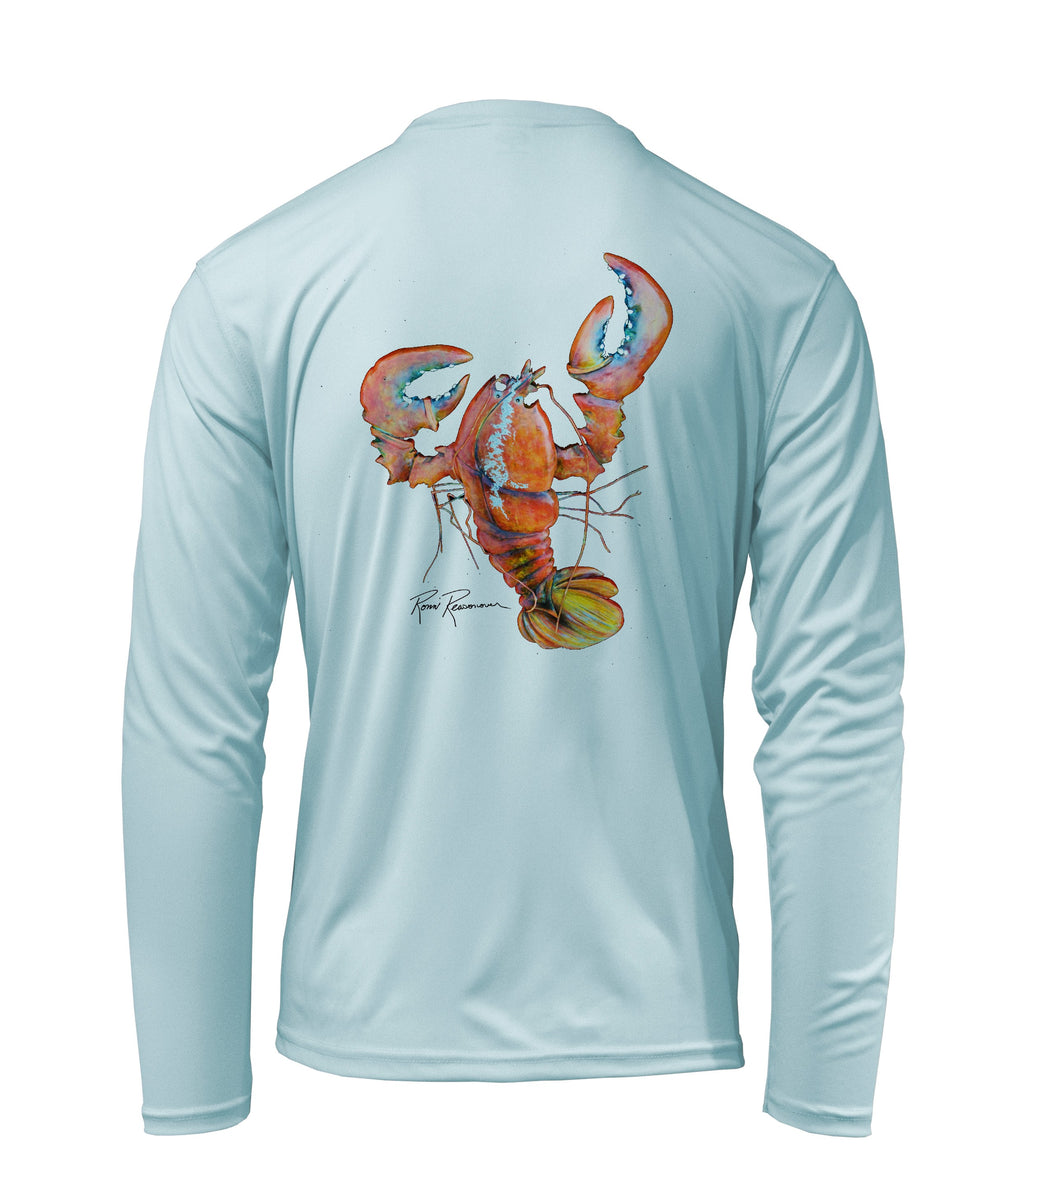 Ronnie Reasonover, The Lobster, Performance Long Sleeve Shirt in Cloud Blue